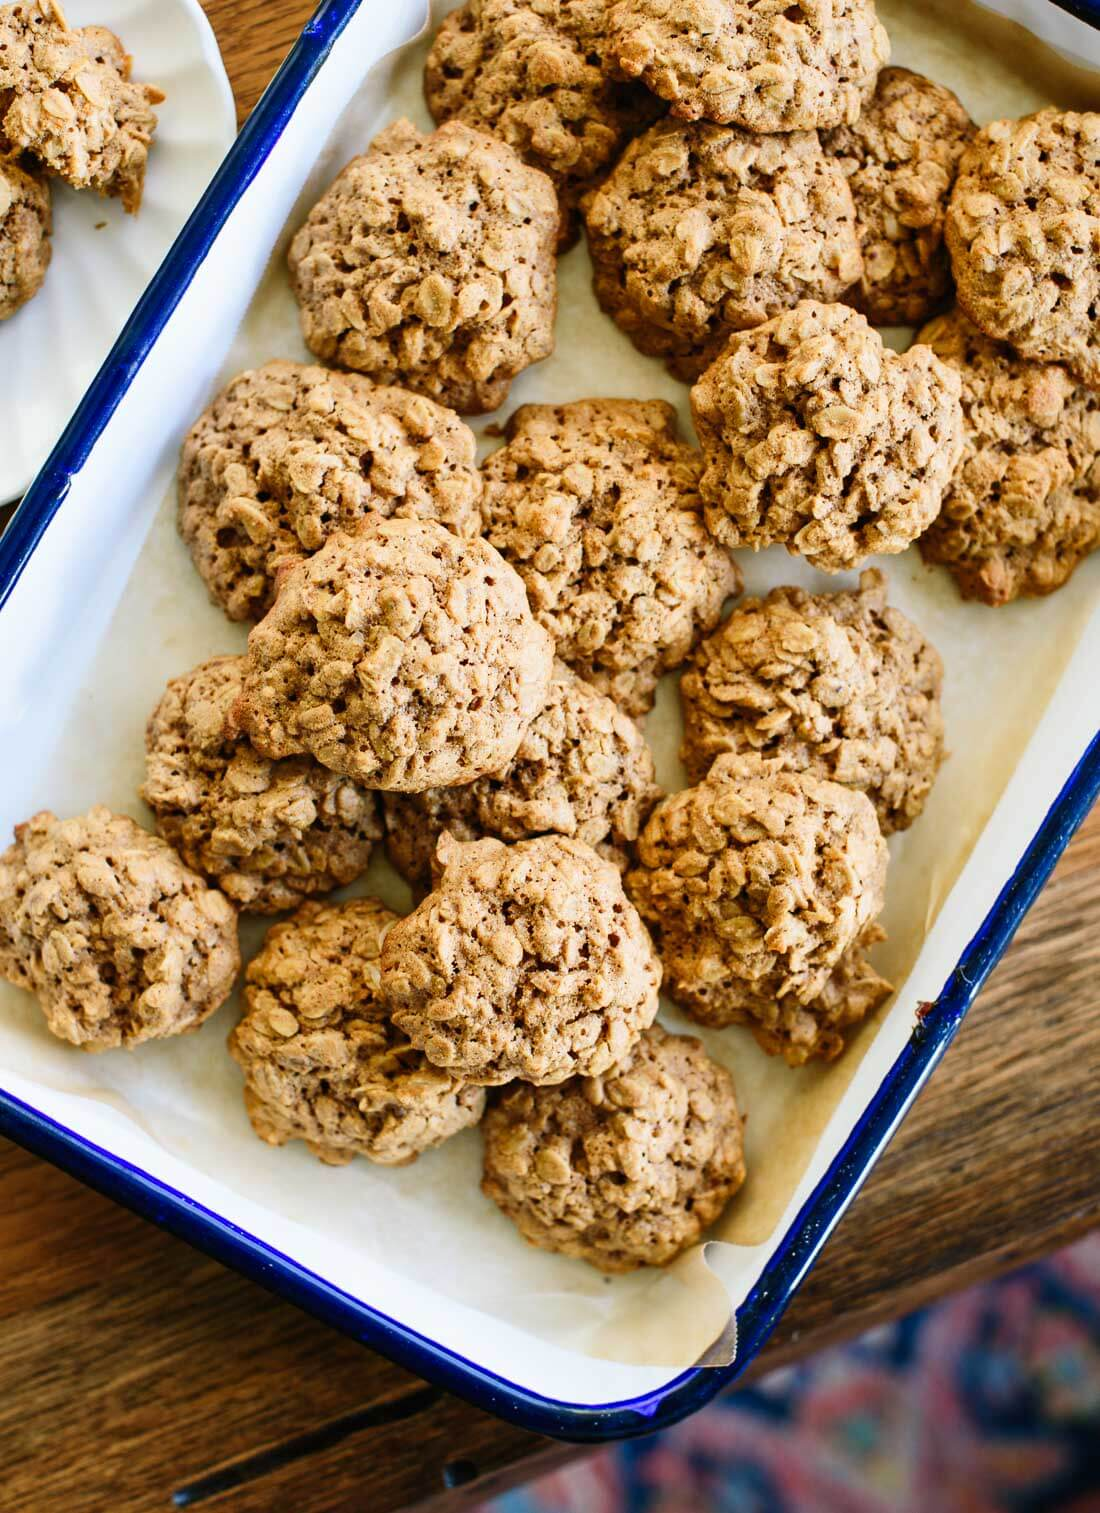 These oatmeal cookies are truly the best. They're soft and fluffy in the middle, with crisper edges and lovely flavor, thanks to warming spices and oat flour.